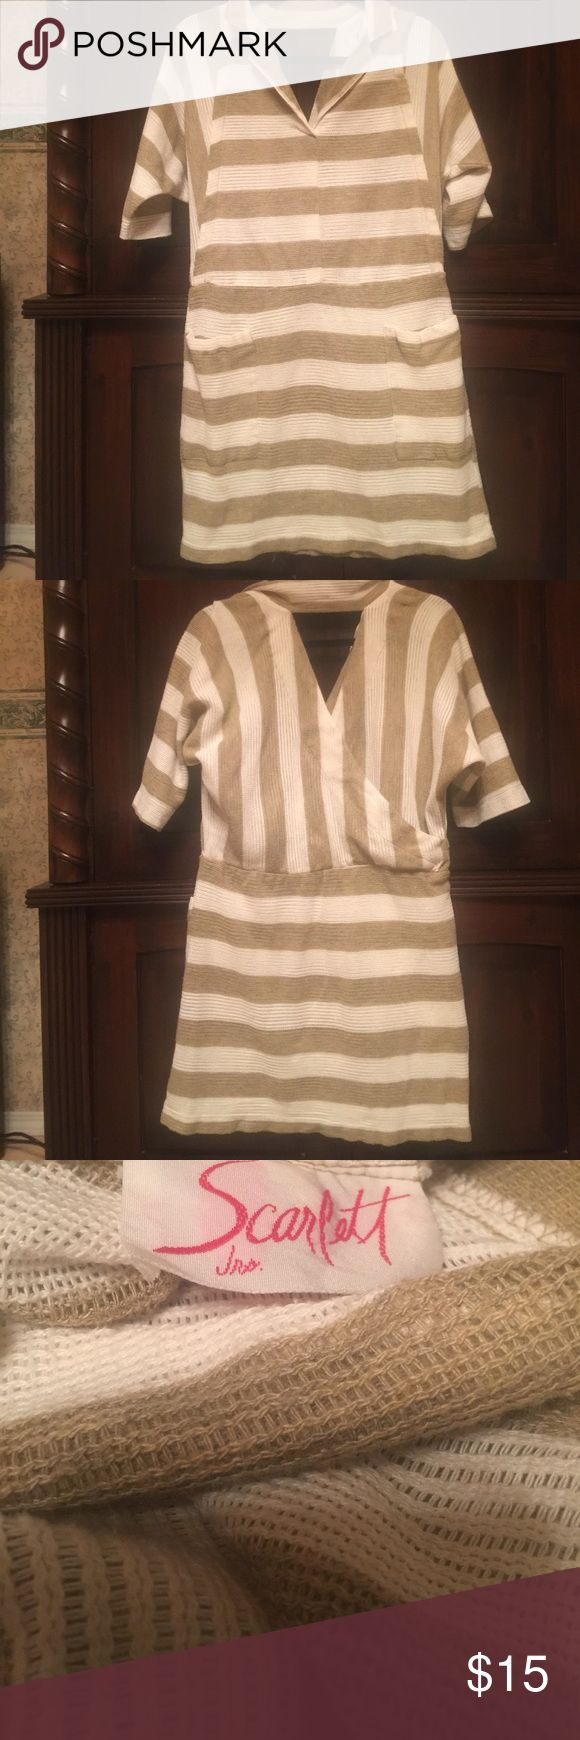 Vintage Scarlett striped dress. Cute and comfy Vintage Scarlett dress. It has two front pockets . V- neck and 3/4  sleeves. Machine washable. Cute and comfy. Scarlett Dresses